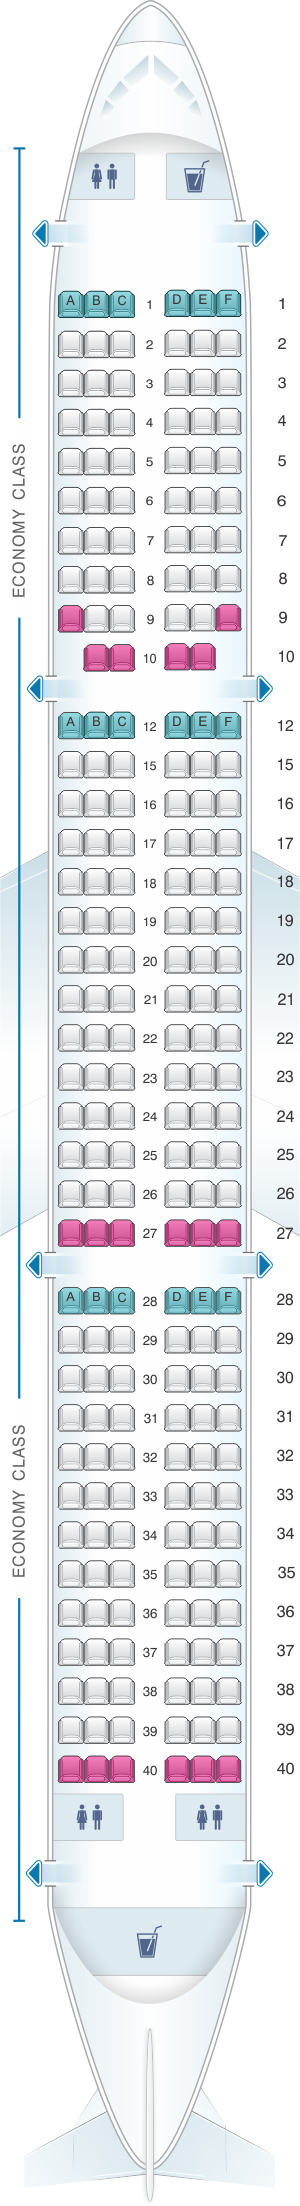 Seat map for Vueling Airbus A321